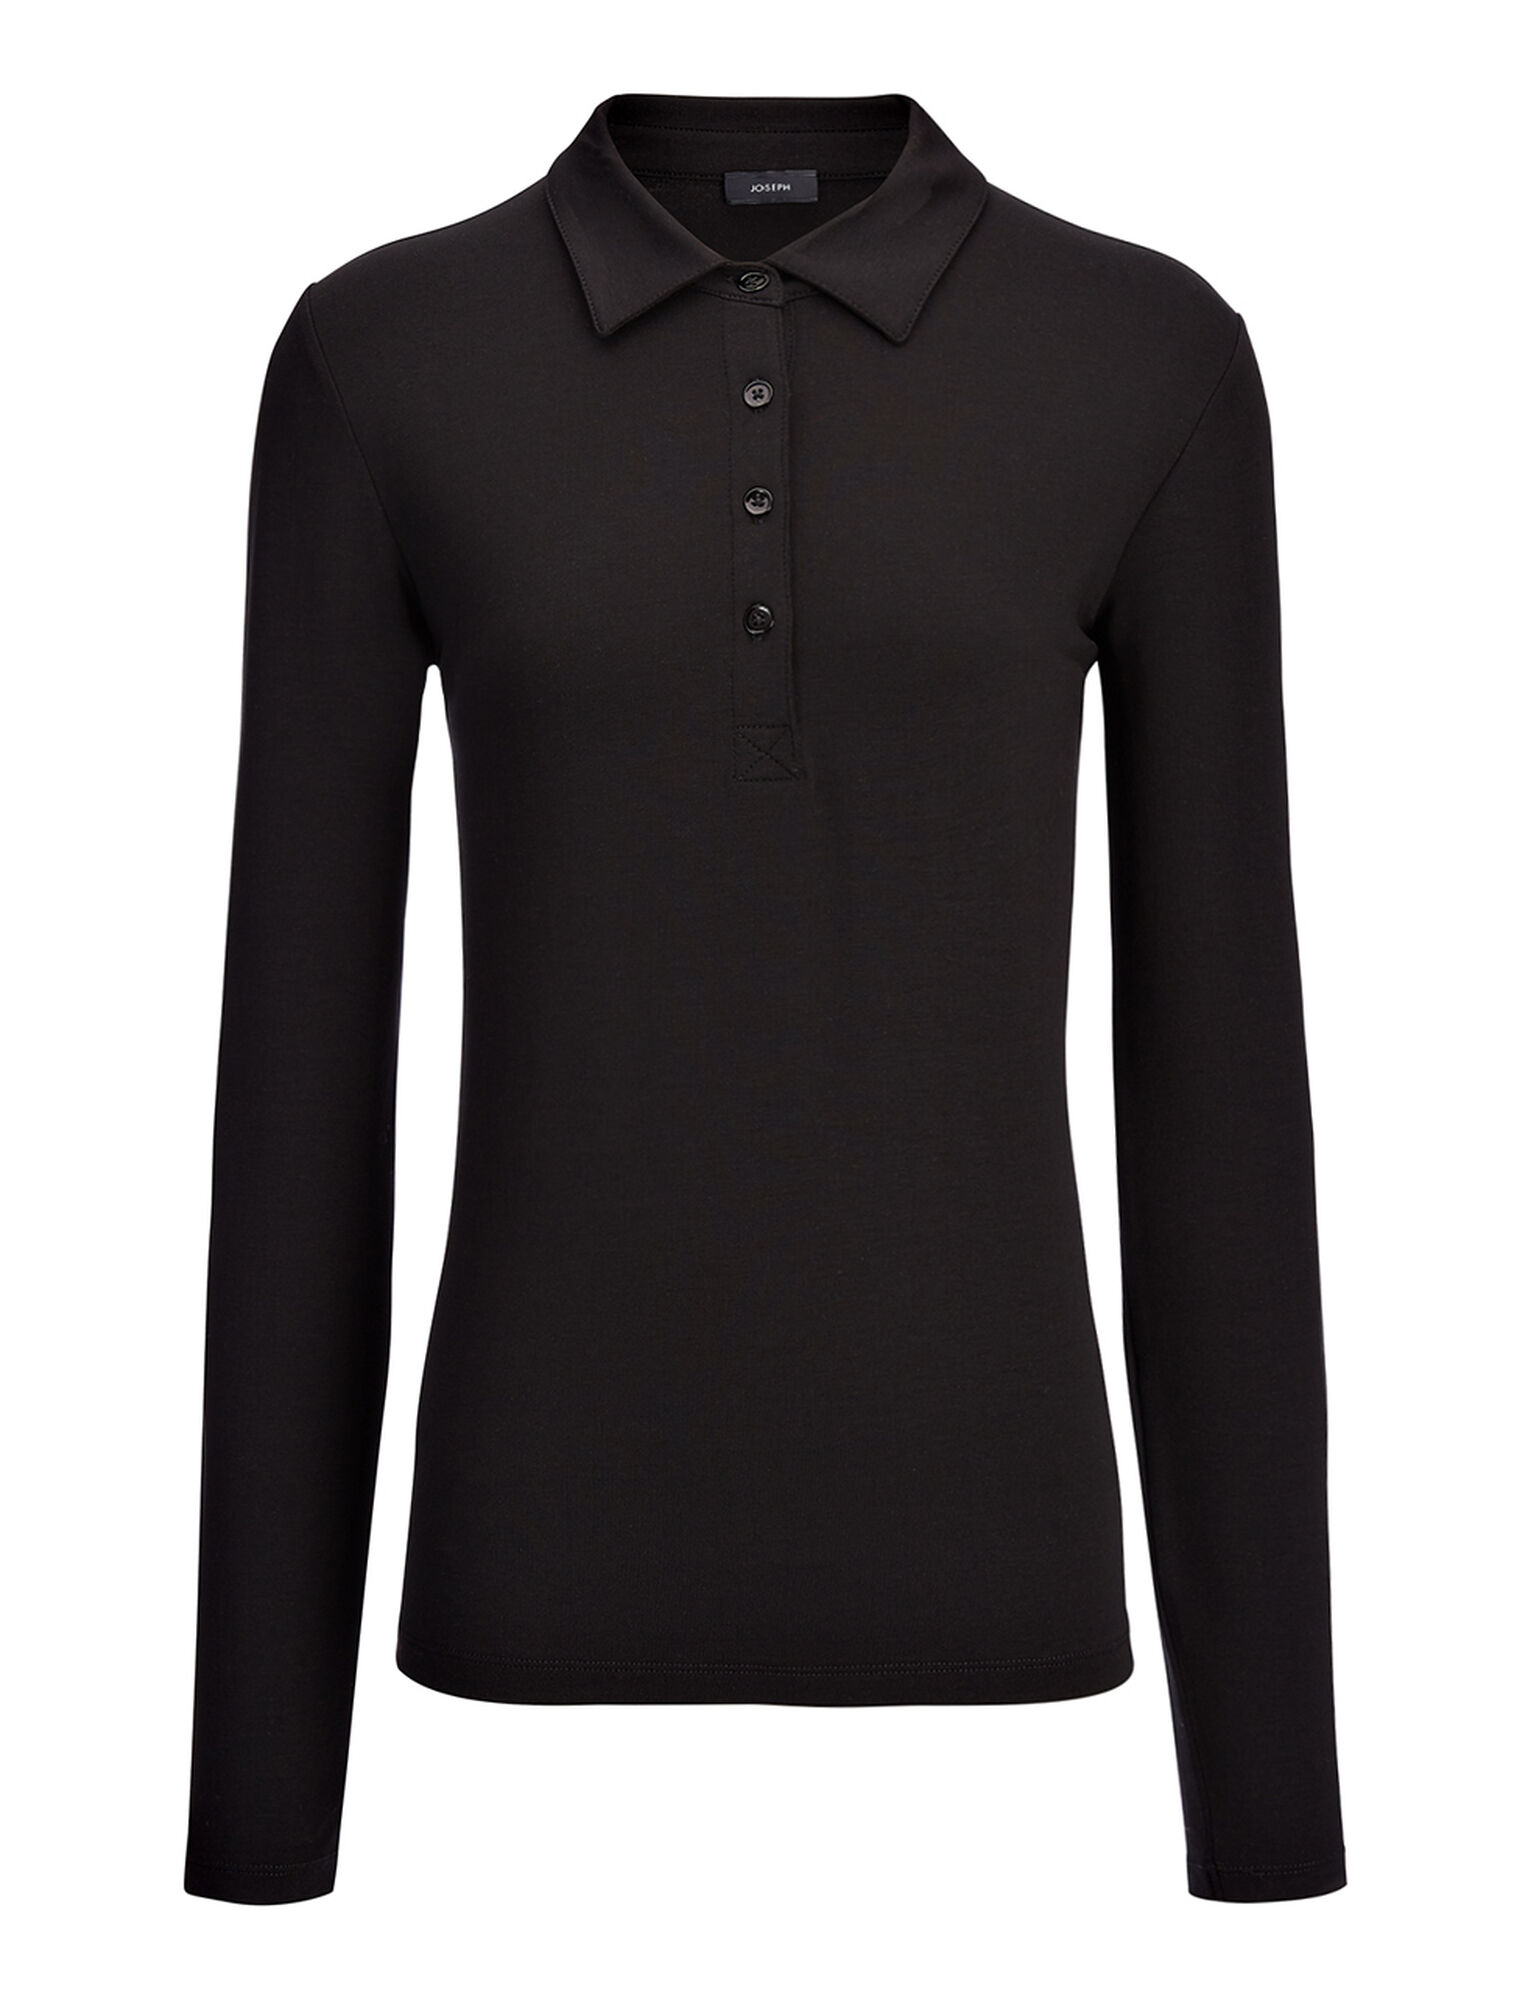 Joseph, Cotton Lyocell Stretch Polo, in BLACK